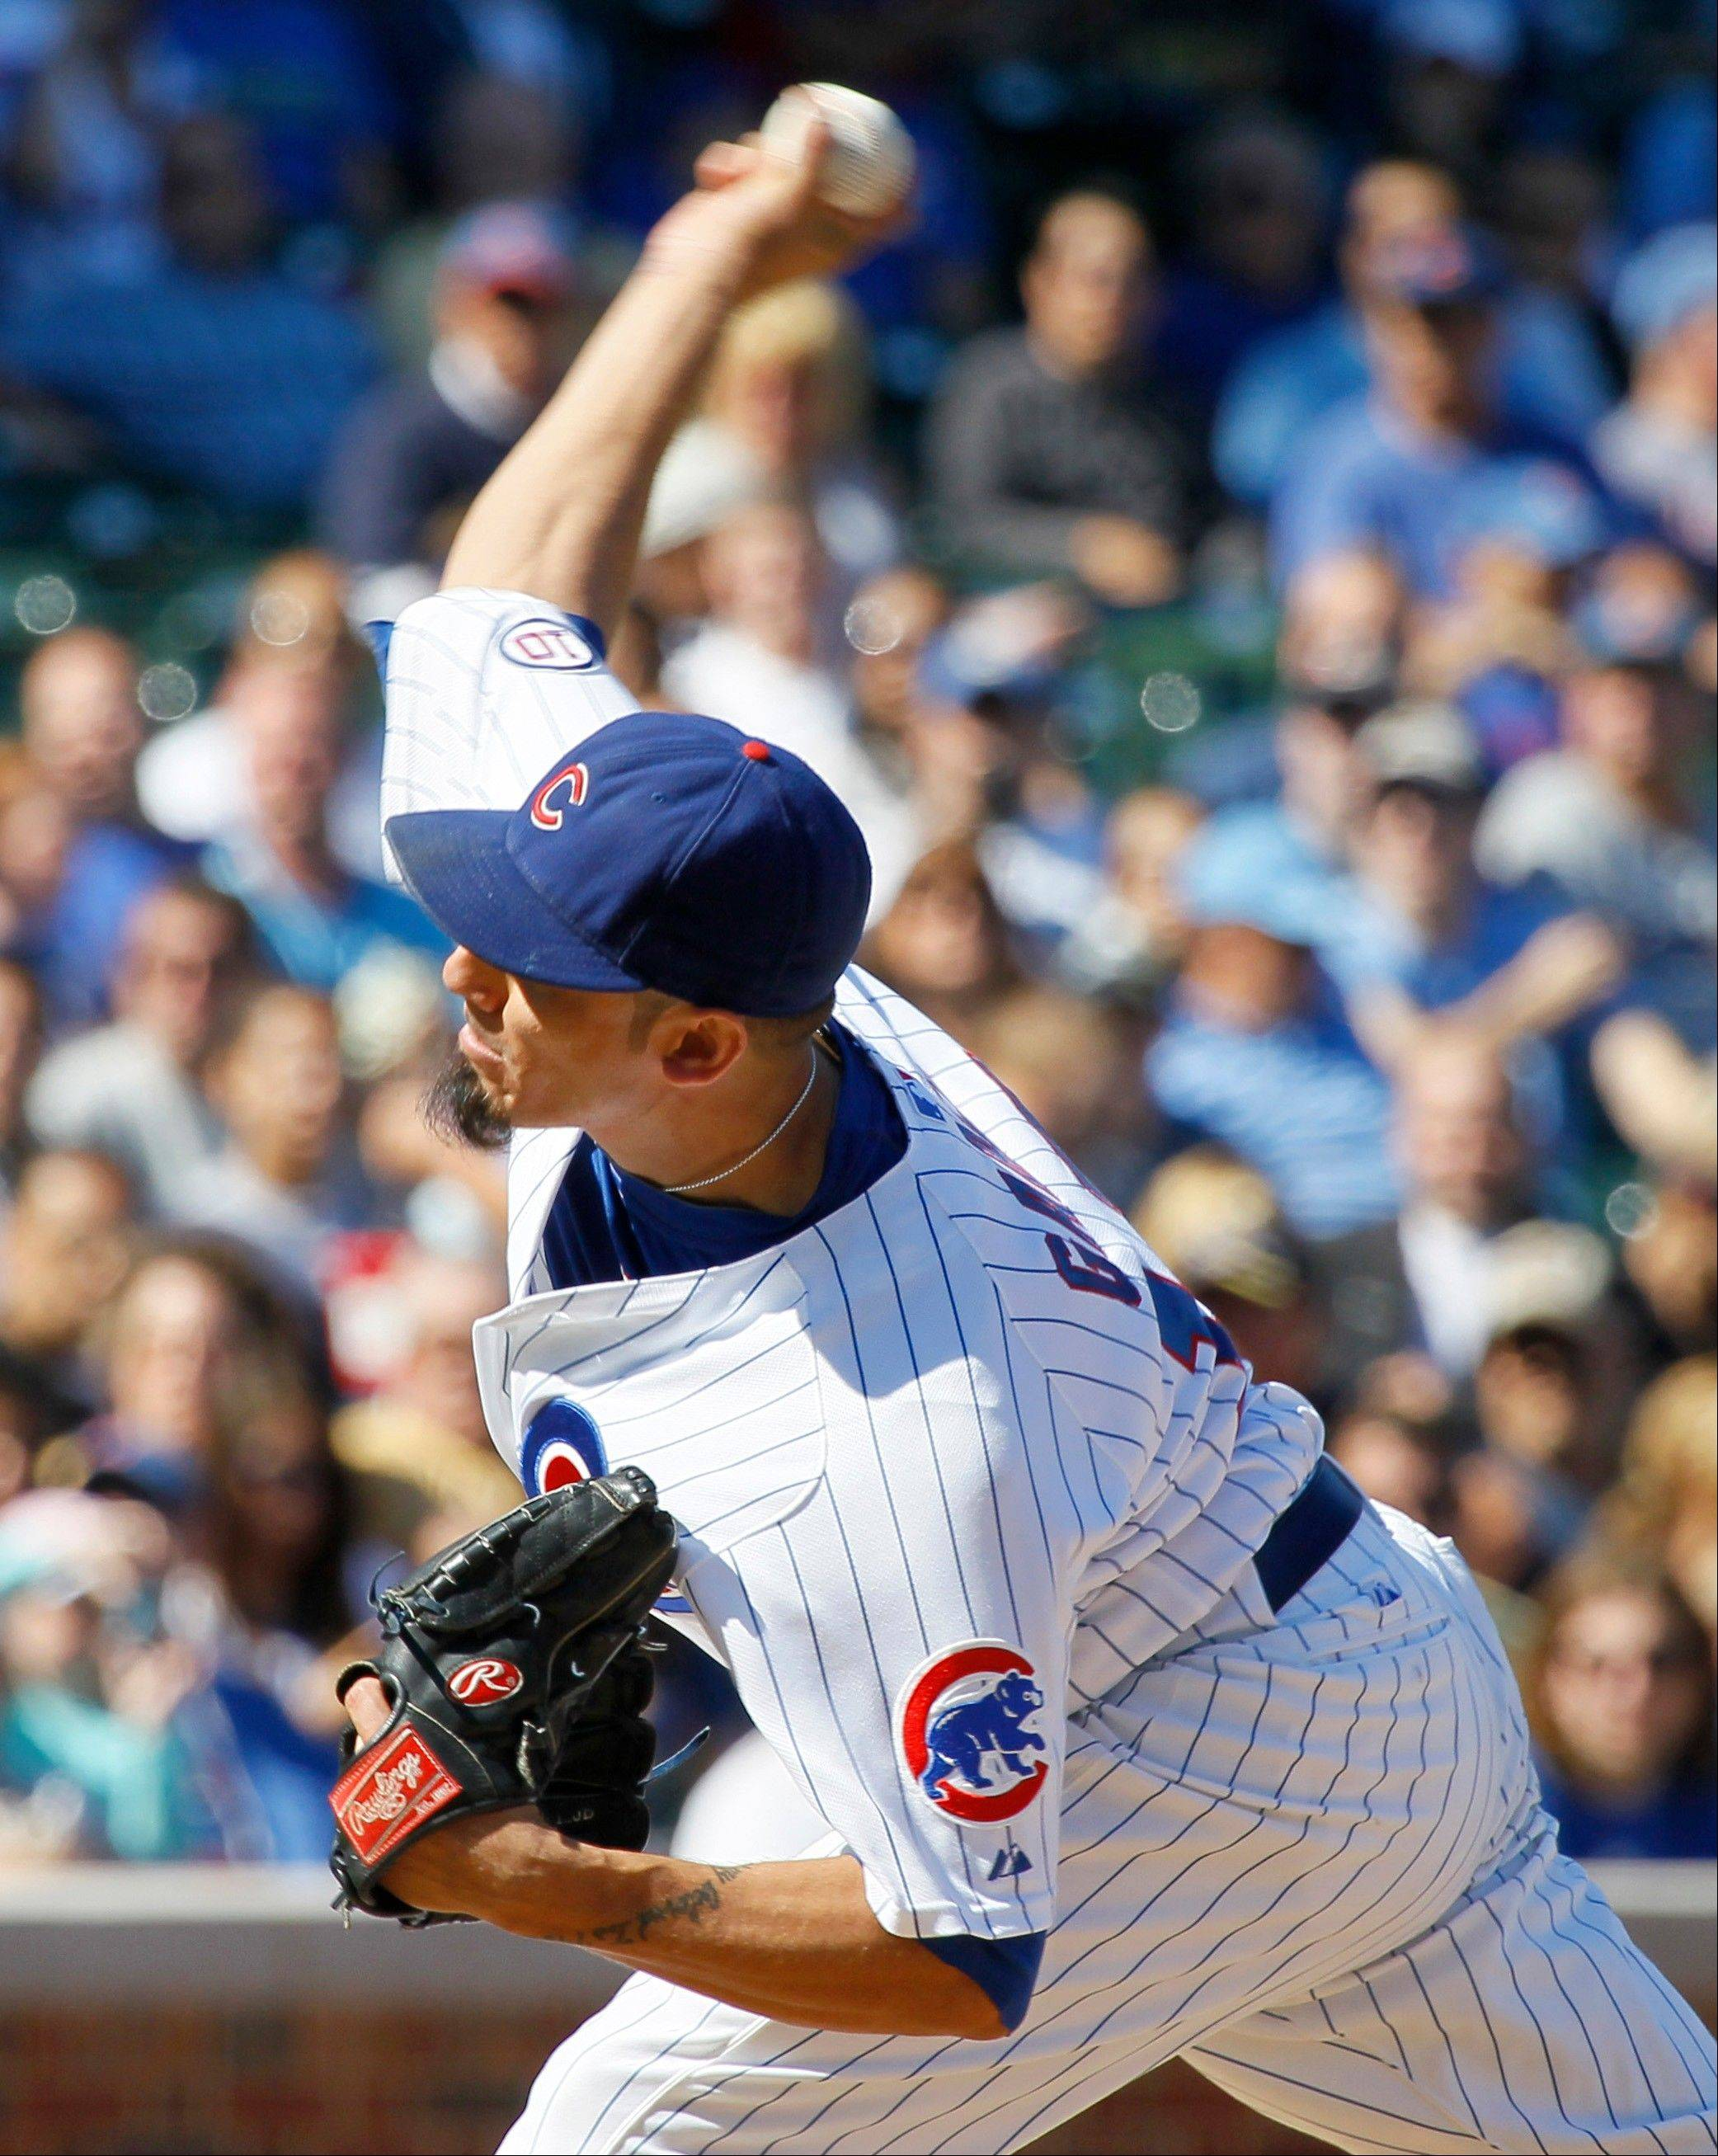 Cubs starting pitcher Matt Garza delivers during the second inning of a baseball game against the Milwaukee Brewers, Wednesday, Sept. 21, 2011, in Chicago. (AP Photo/Charles Rex Arbogast)